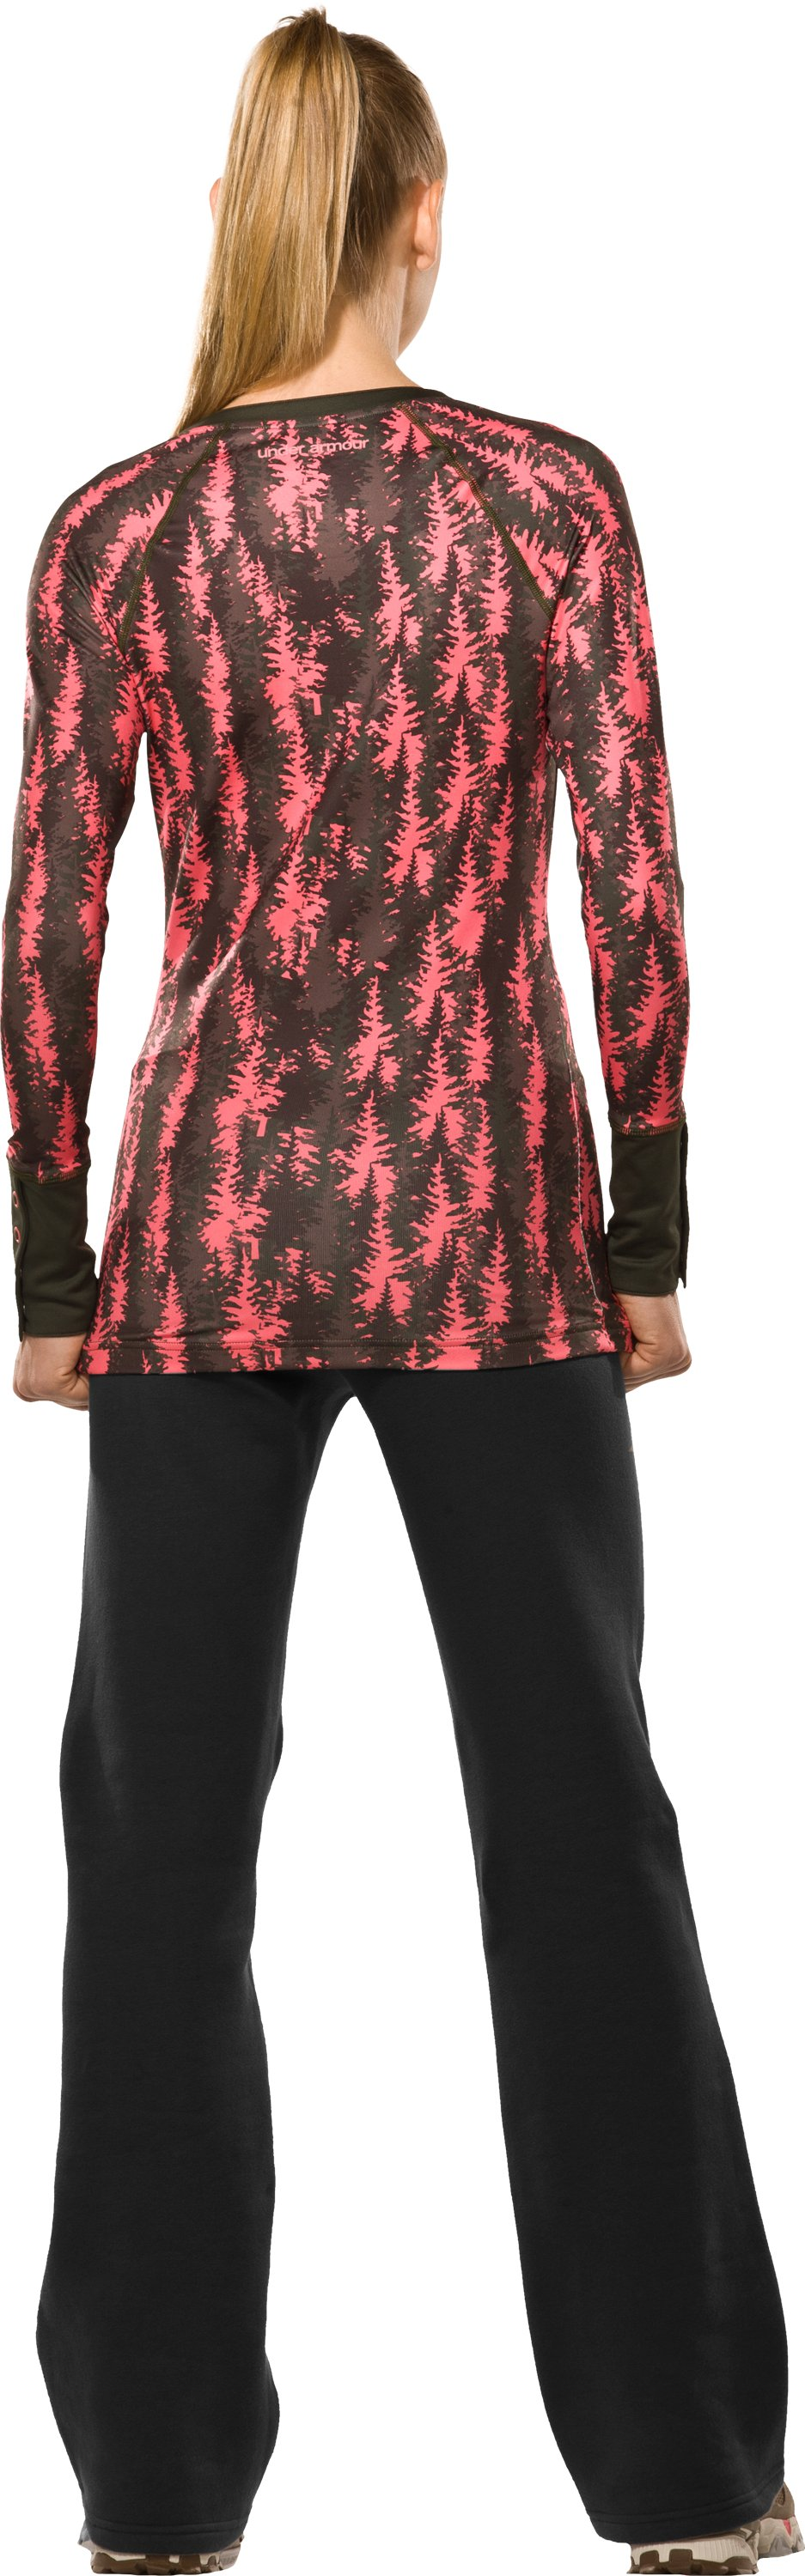 Women's EVO ColdGear® Tree Print Henley Shirt, Perfection, Back